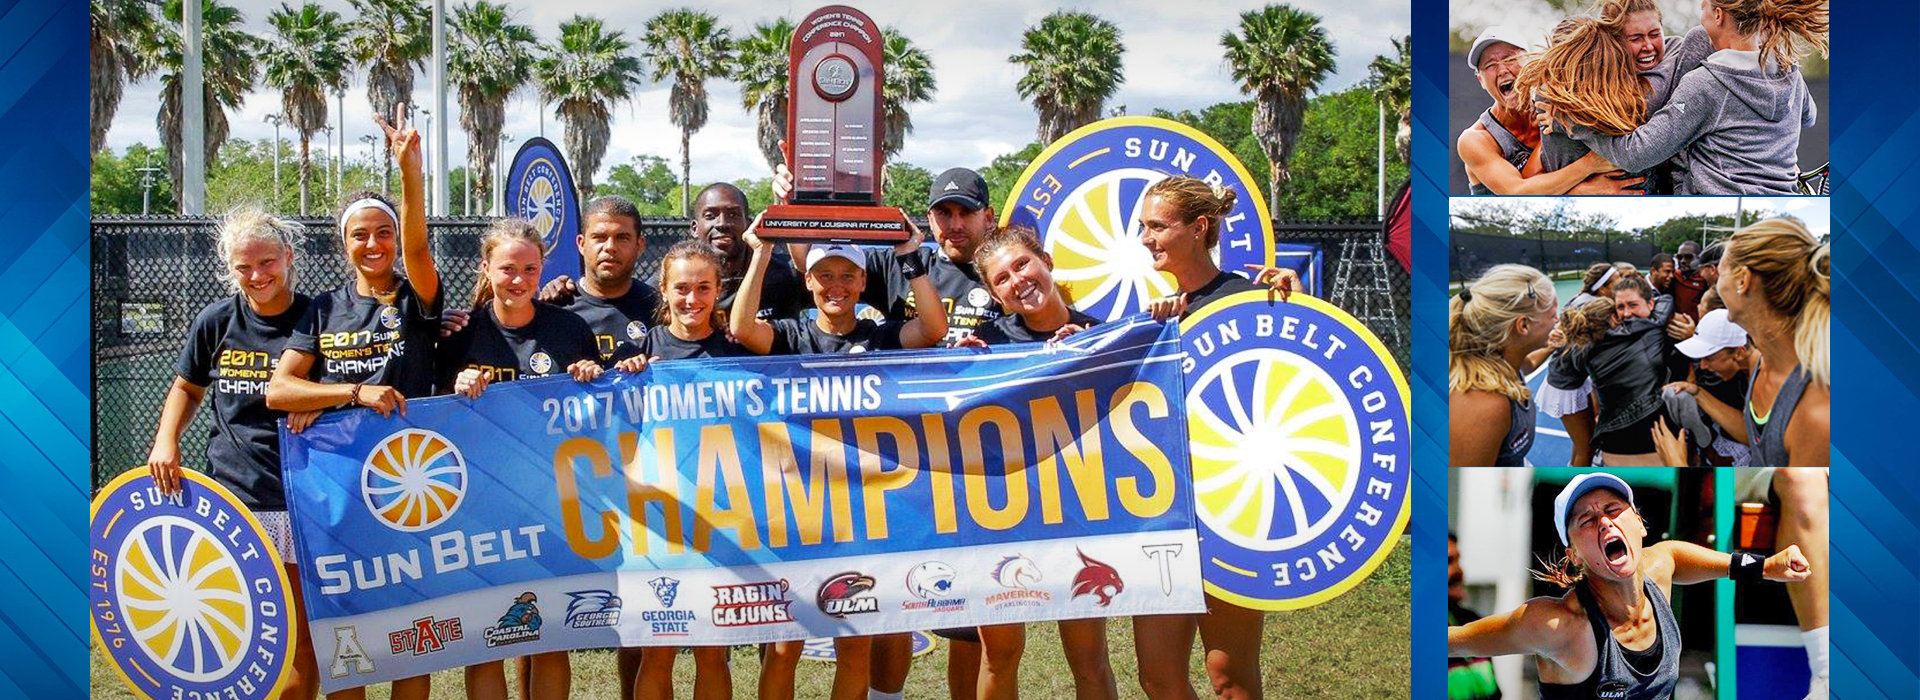 2017 ULM Women's Tennis Champions Sun Belt Conference